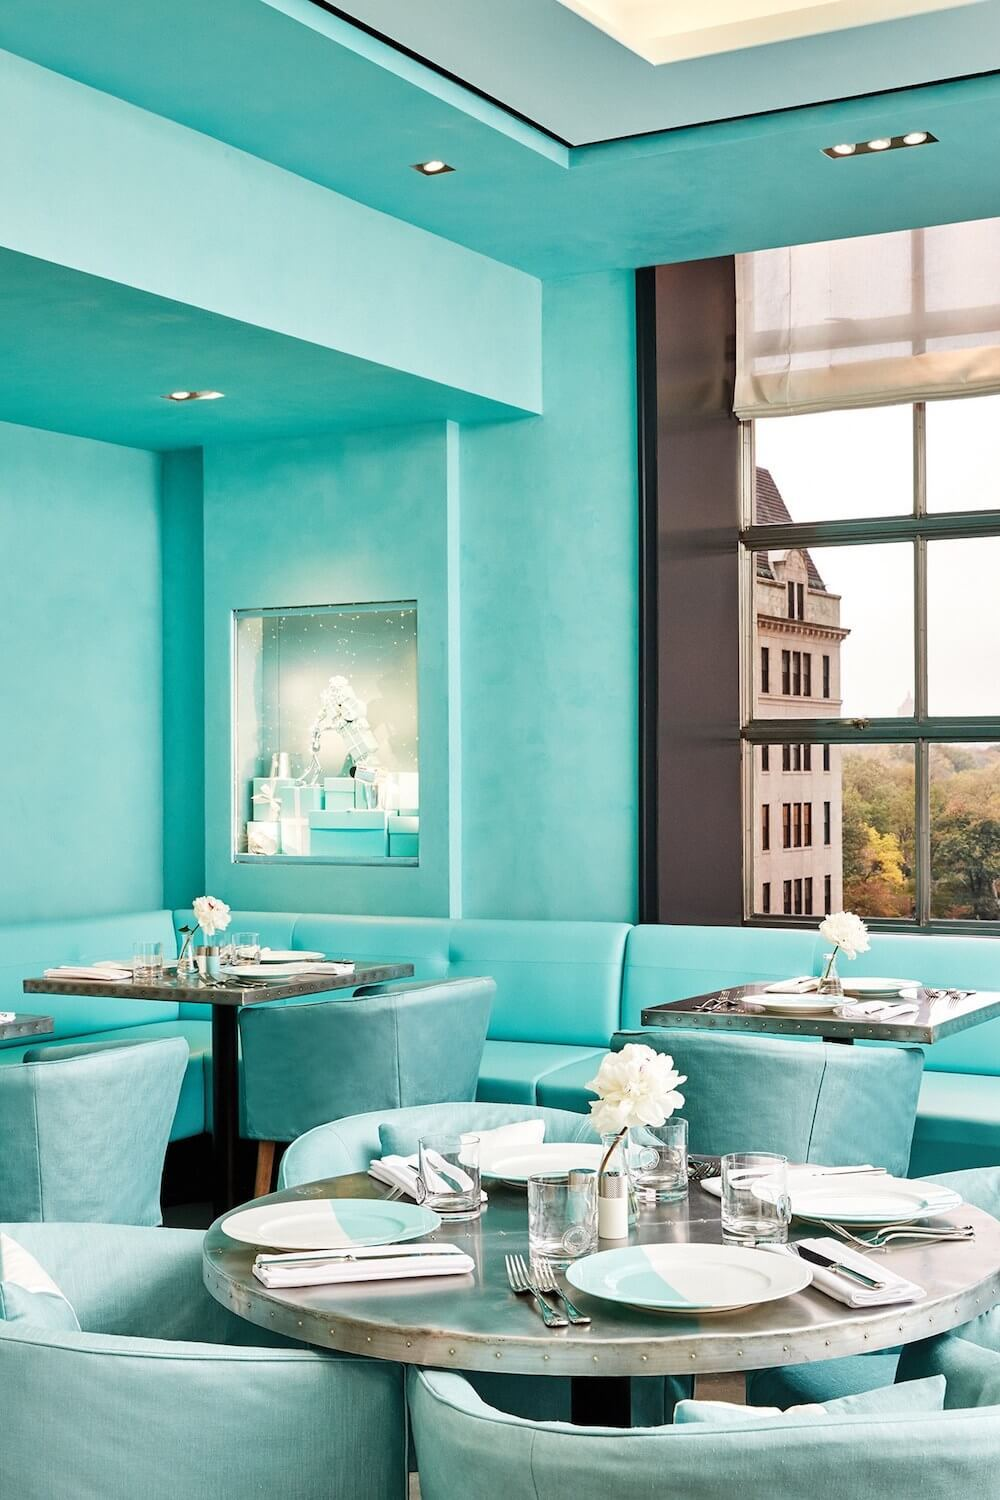 Tiffany & Co. Blue Box Cafe Interior Walls